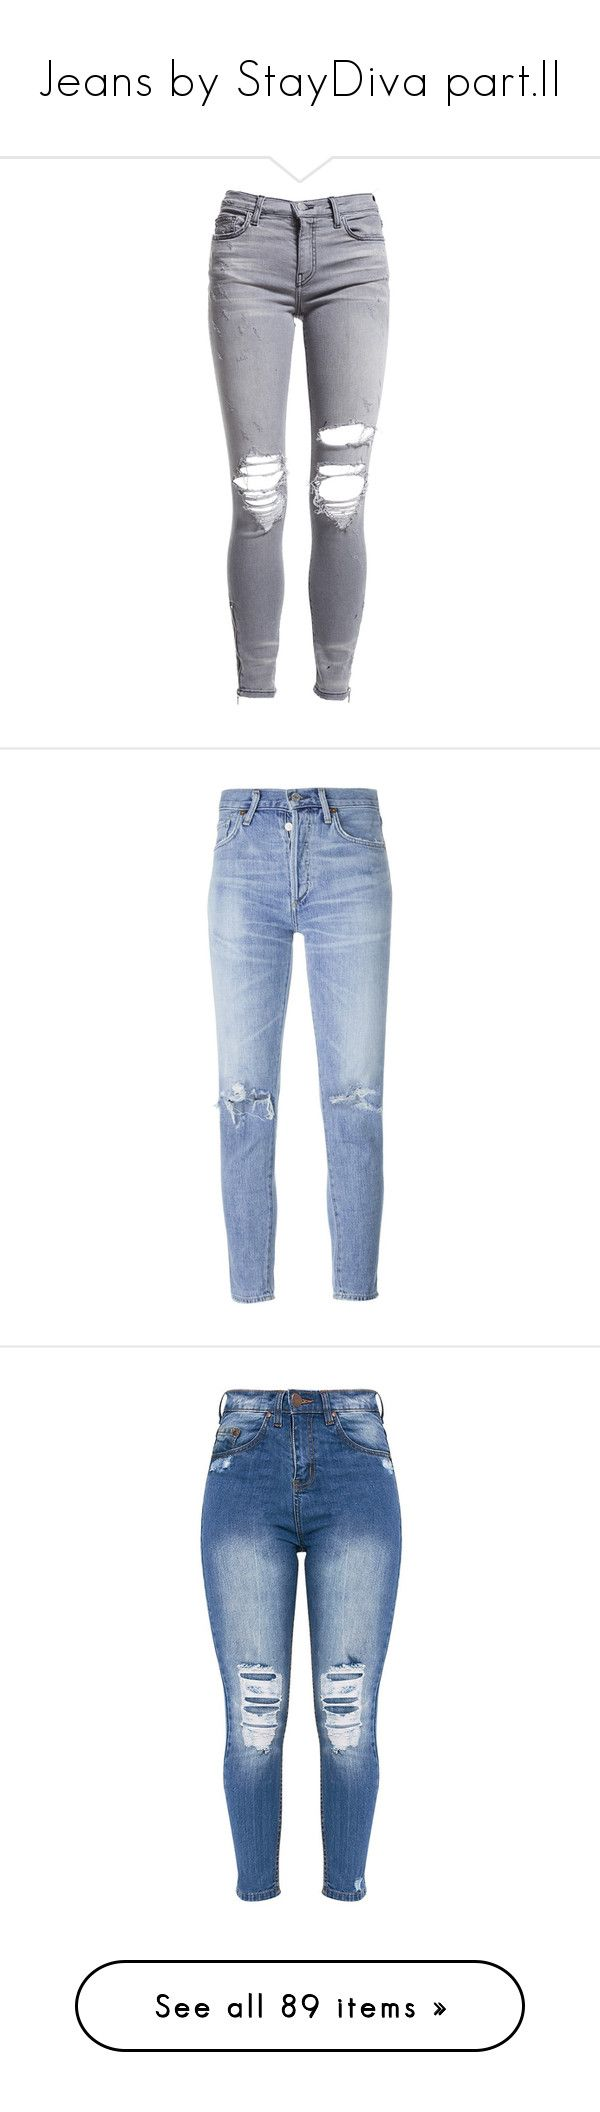 """""""Jeans by StayDiva part.II"""" by staydiva ❤ liked on Polyvore featuring jeans, pants, bottoms, pantaloni, grey, ripped jeans, ripped zipper jeans, zipper skinny jeans, cropped skinny jeans and cropped frayed jeans"""